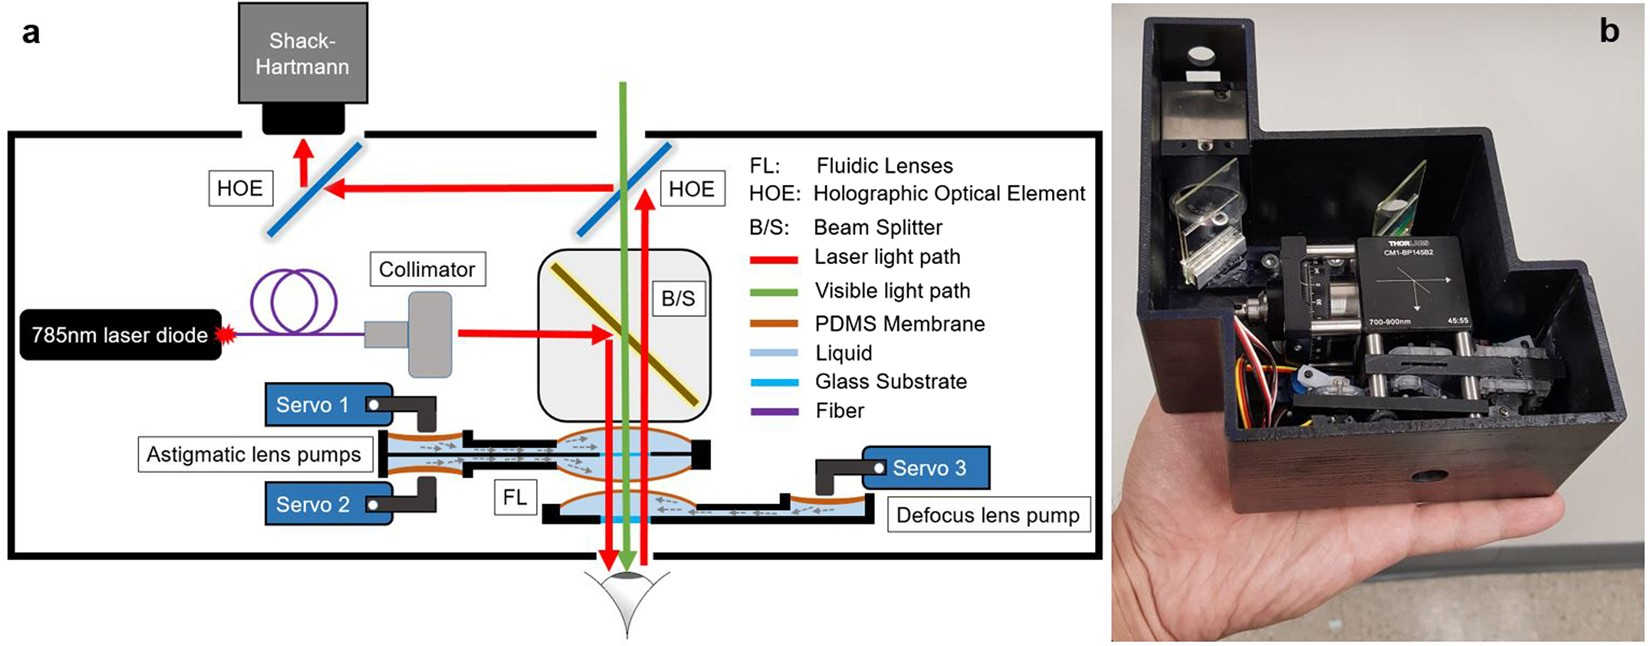 A New Low Cost Compact Auto Phoropter For Refractive Assessment In Alternating Current Diagram Kids Of Twoway Automatic Developing Countries Scientific Reports